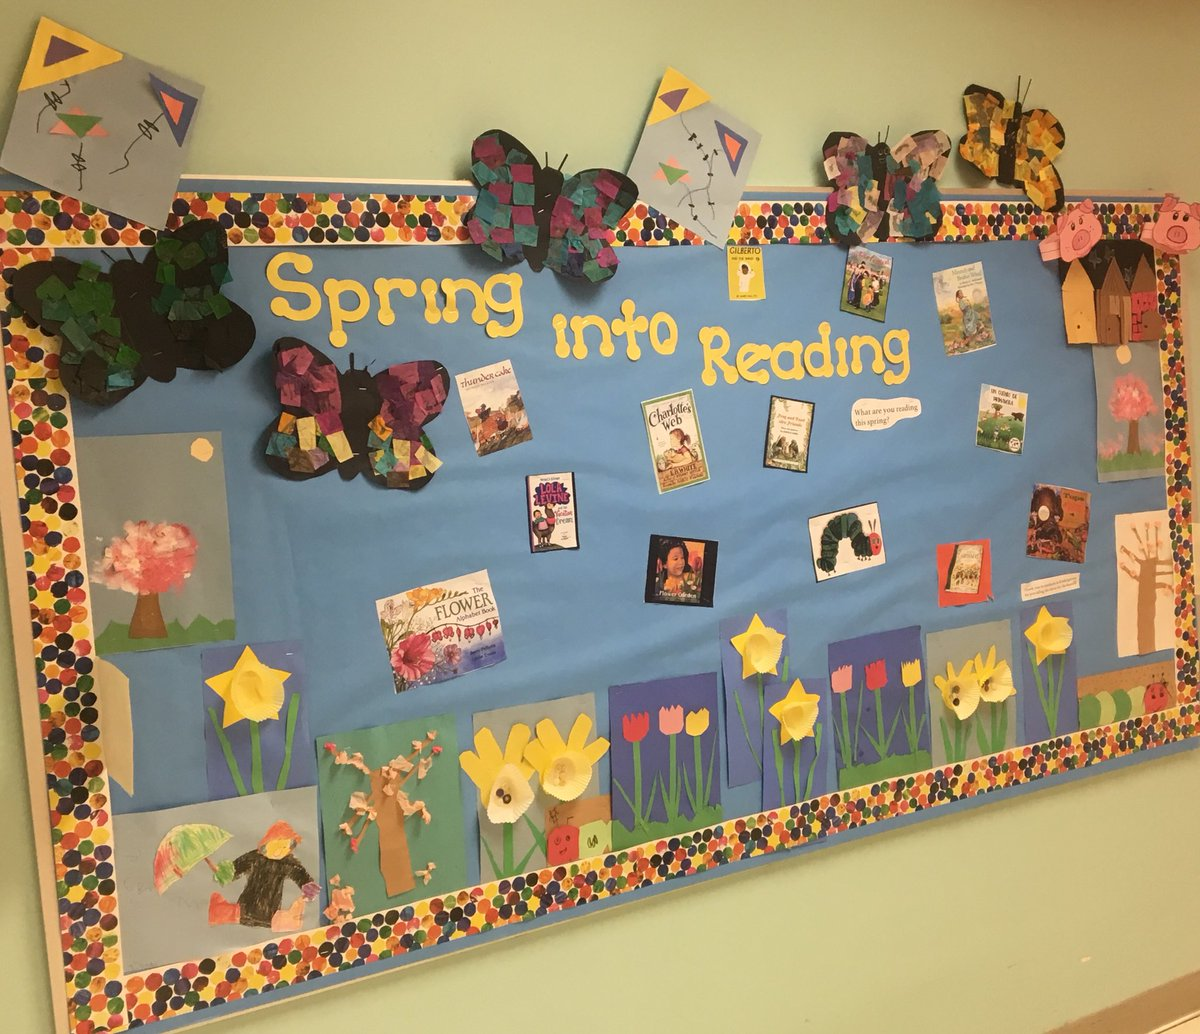 What are you reading this Spring?                                Thank you Kindergarten students for the decor for the board😀⁦<a target='_blank' href='http://twitter.com/GlebeAPS'>@GlebeAPS</a>⁩ ⁦<a target='_blank' href='http://twitter.com/GlebeITC'>@GlebeITC</a>⁩ <a target='_blank' href='http://search.twitter.com/search?q=glebeeagles'><a target='_blank' href='https://twitter.com/hashtag/glebeeagles?src=hash'>#glebeeagles</a></a> <a target='_blank' href='https://t.co/xPXObEBt3V'>https://t.co/xPXObEBt3V</a>